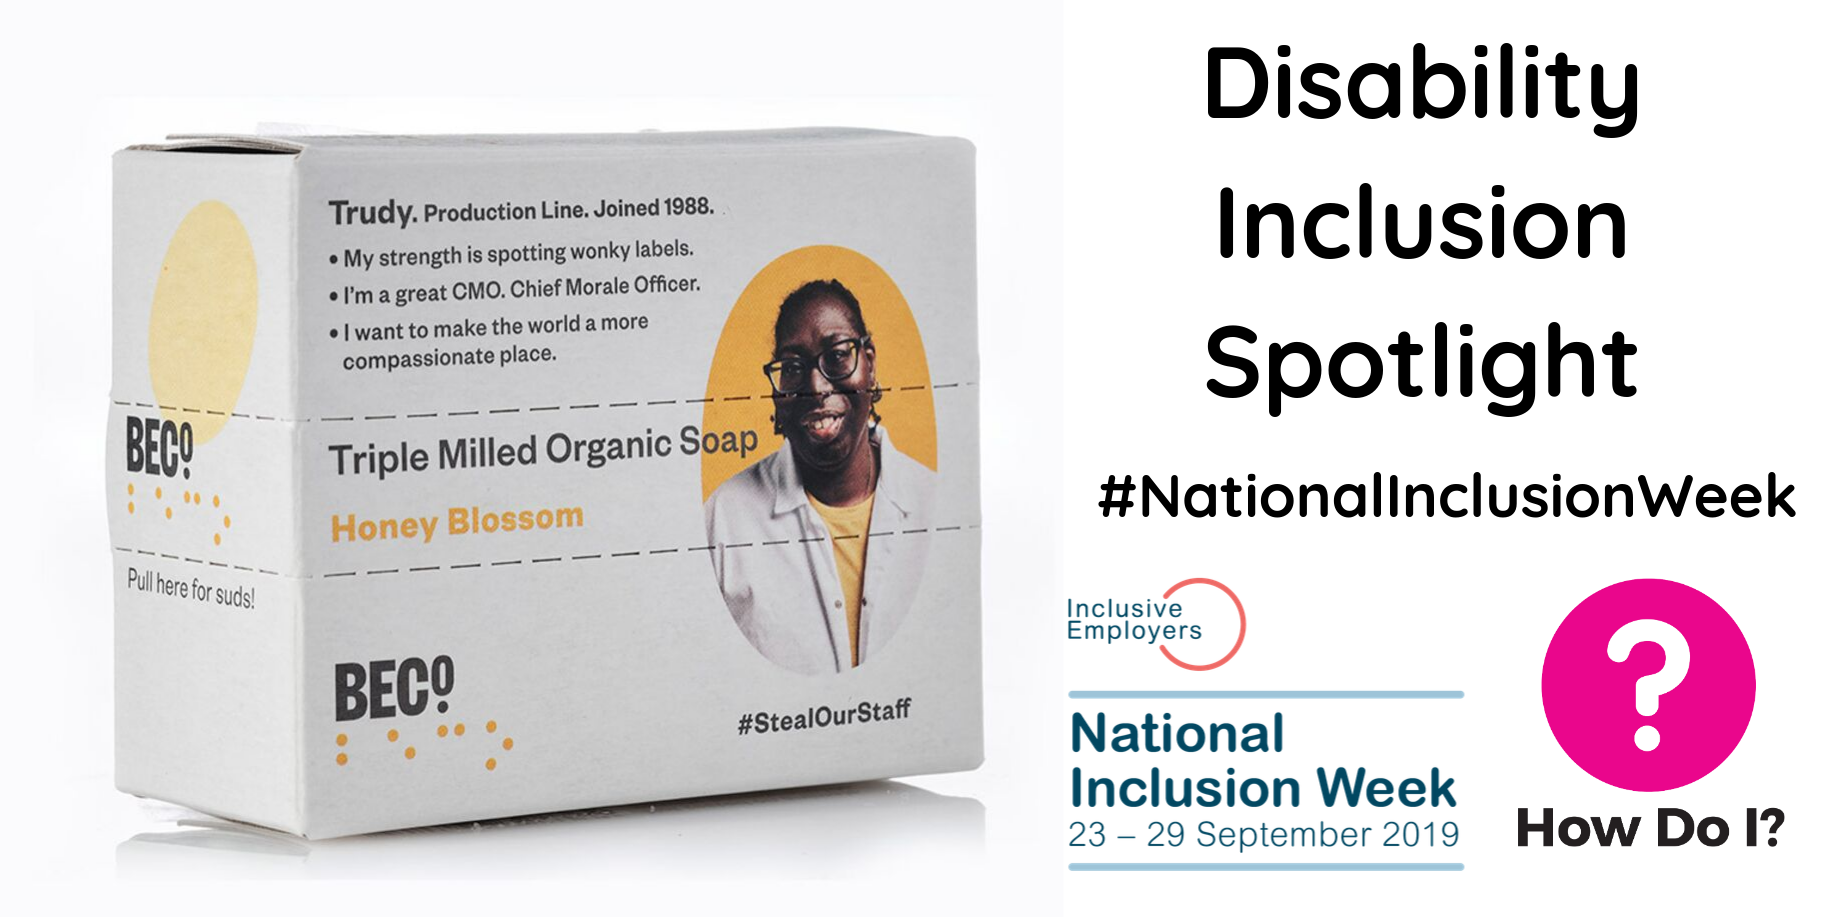 Alt text: Disability Inclusion Spotlight #NationalInclusionWeek, pictured is a box of BECO soap, as part of their #StealOurStaff campaign they have put a picture of their disabled colleagues on their soap boxes, which include their CV. Their colleague Trudy is pictured on the box in this banner.